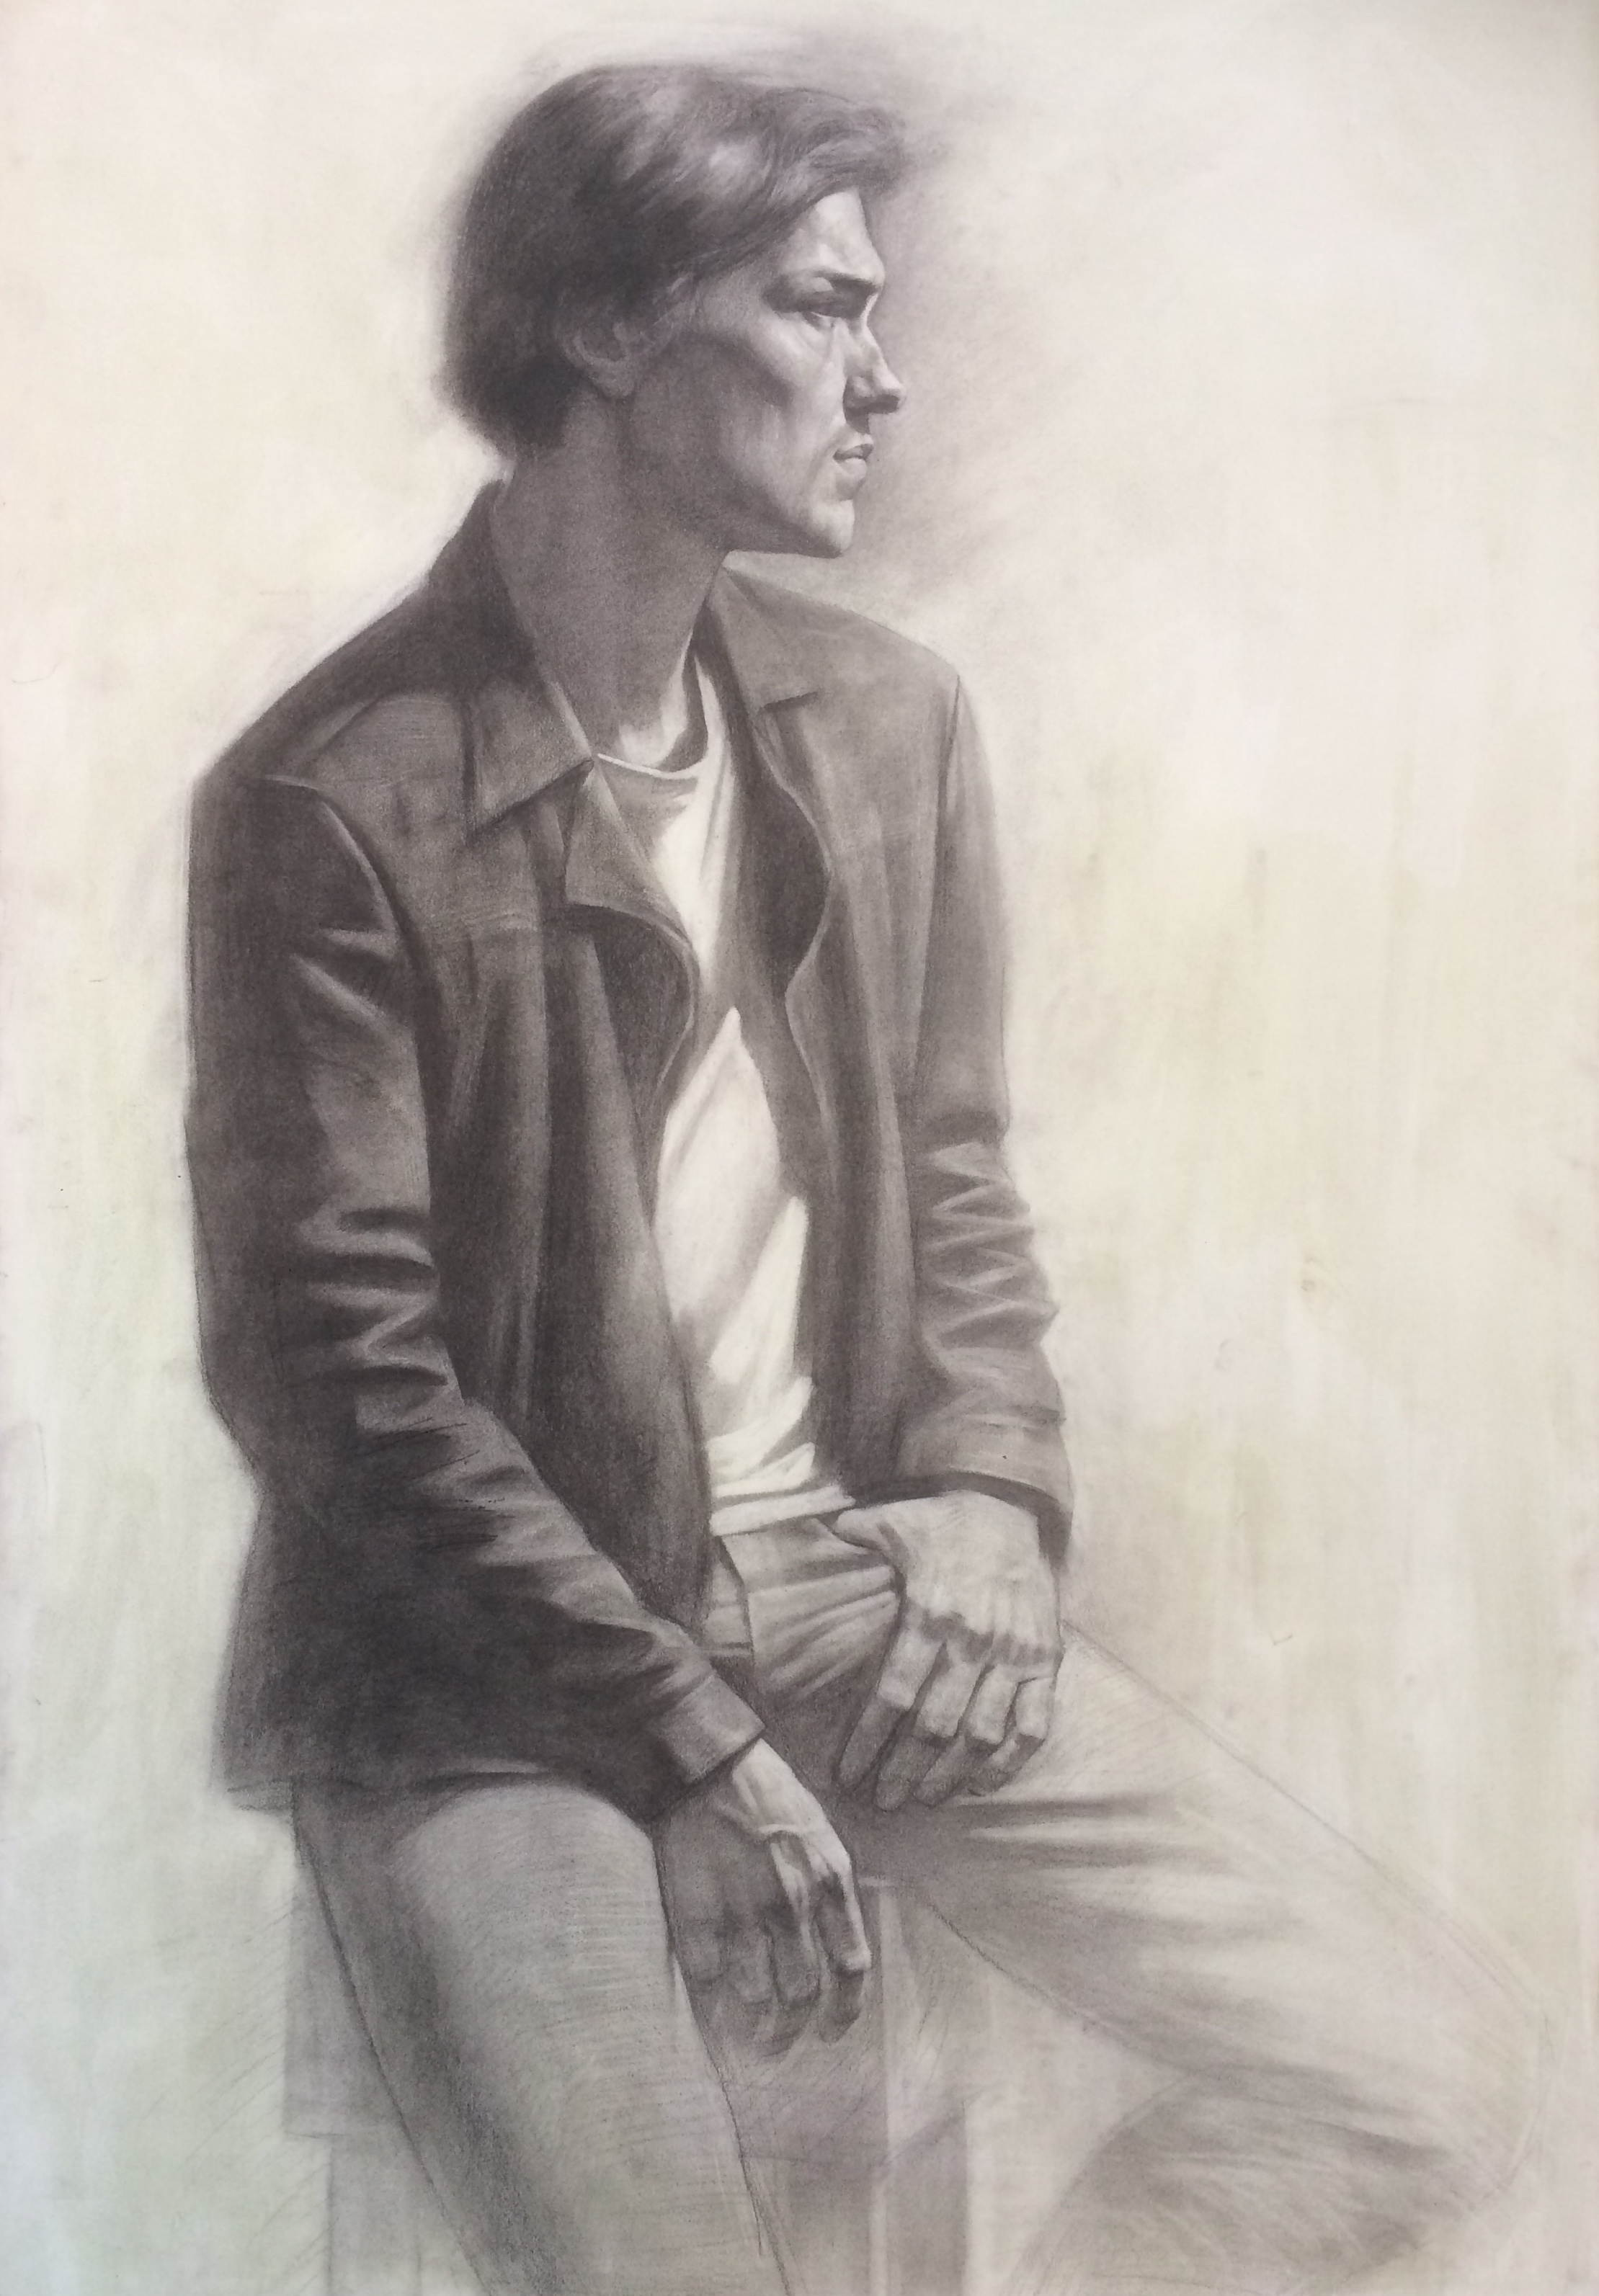 Portrait with hands, charcoal on paper